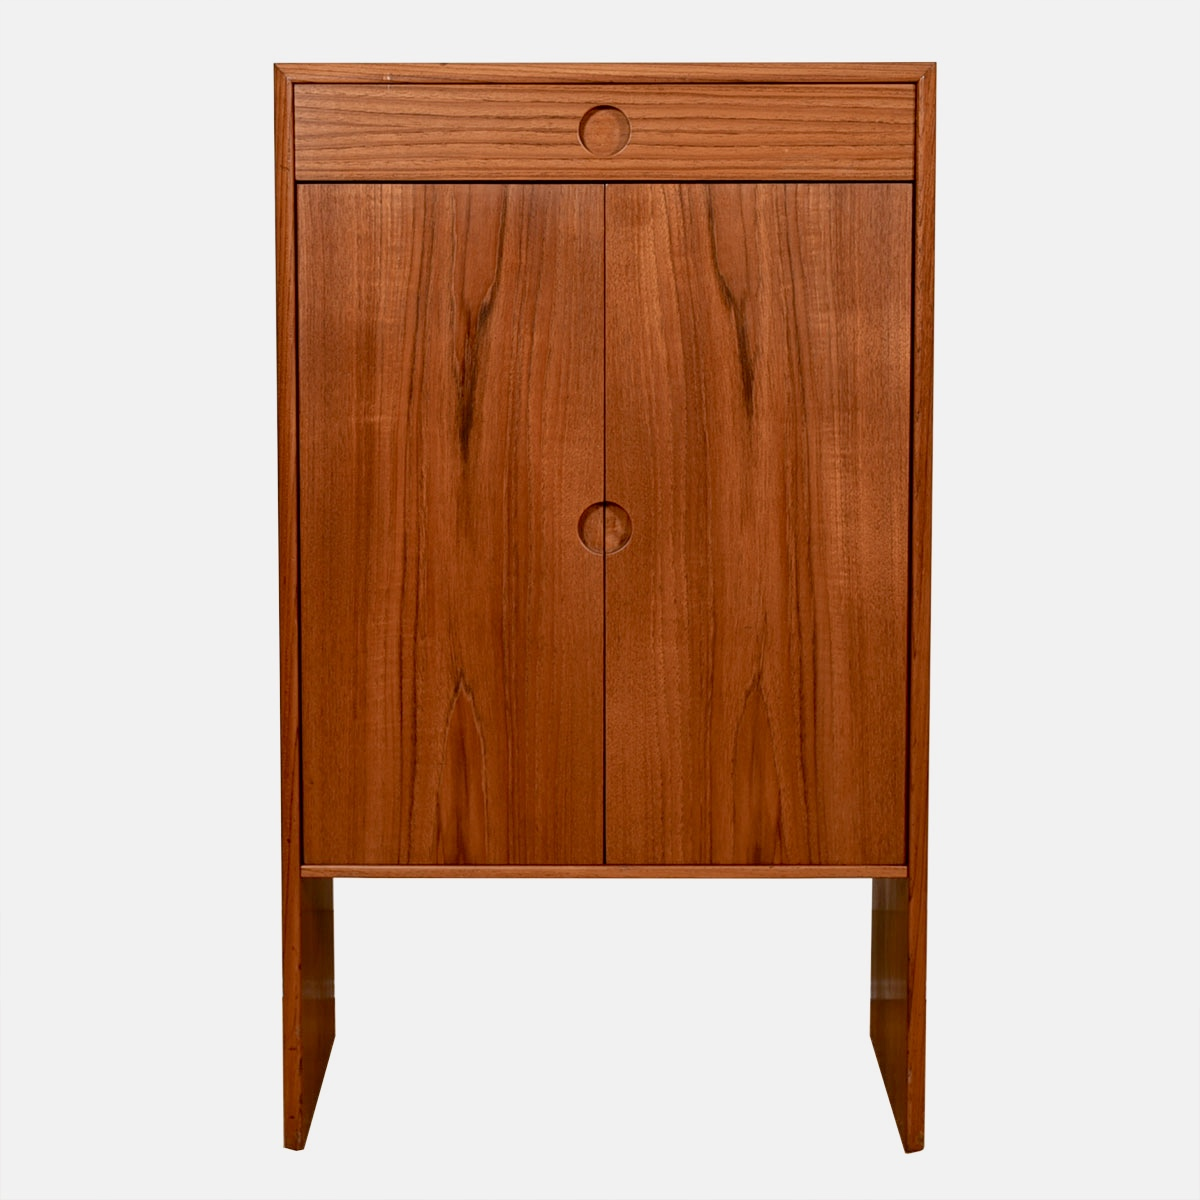 Versatile & Petite — Danish Modern Teak Adjustable Shelf Cabinet w/ Drawer